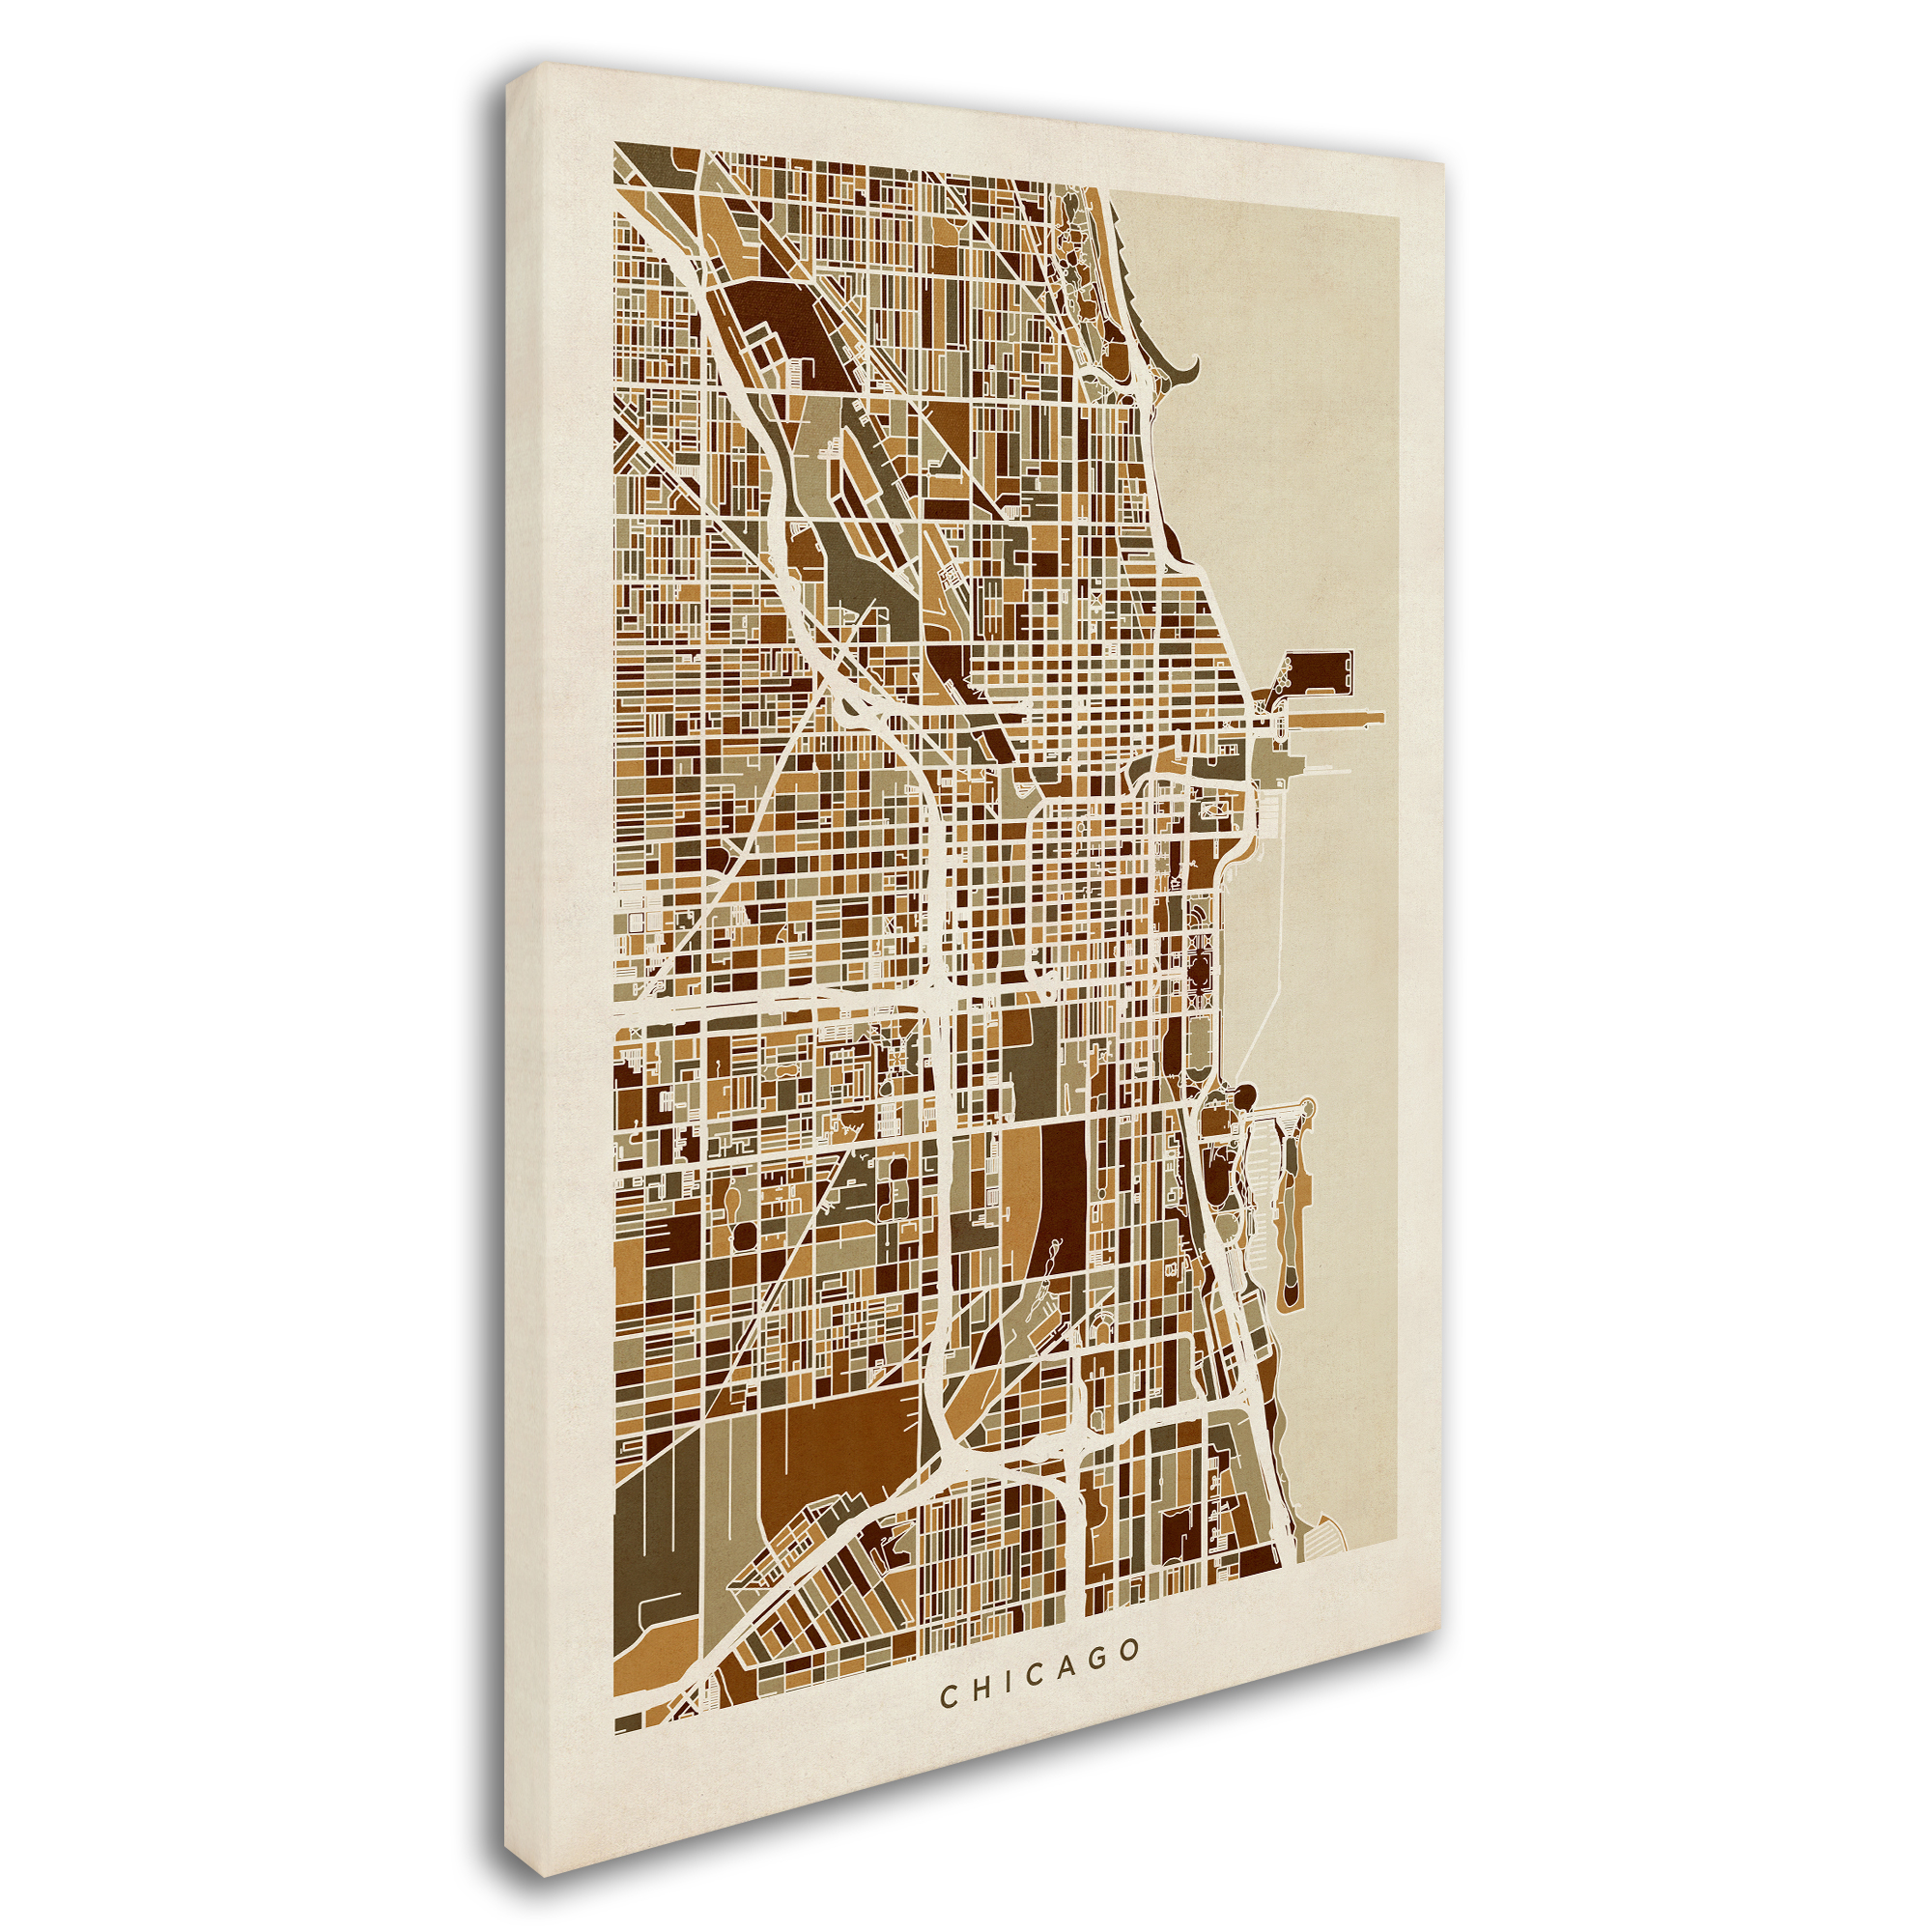 Chicago Map Canvas.Trademark Fine Art Chicago City Street Map Canvas Art By Michael